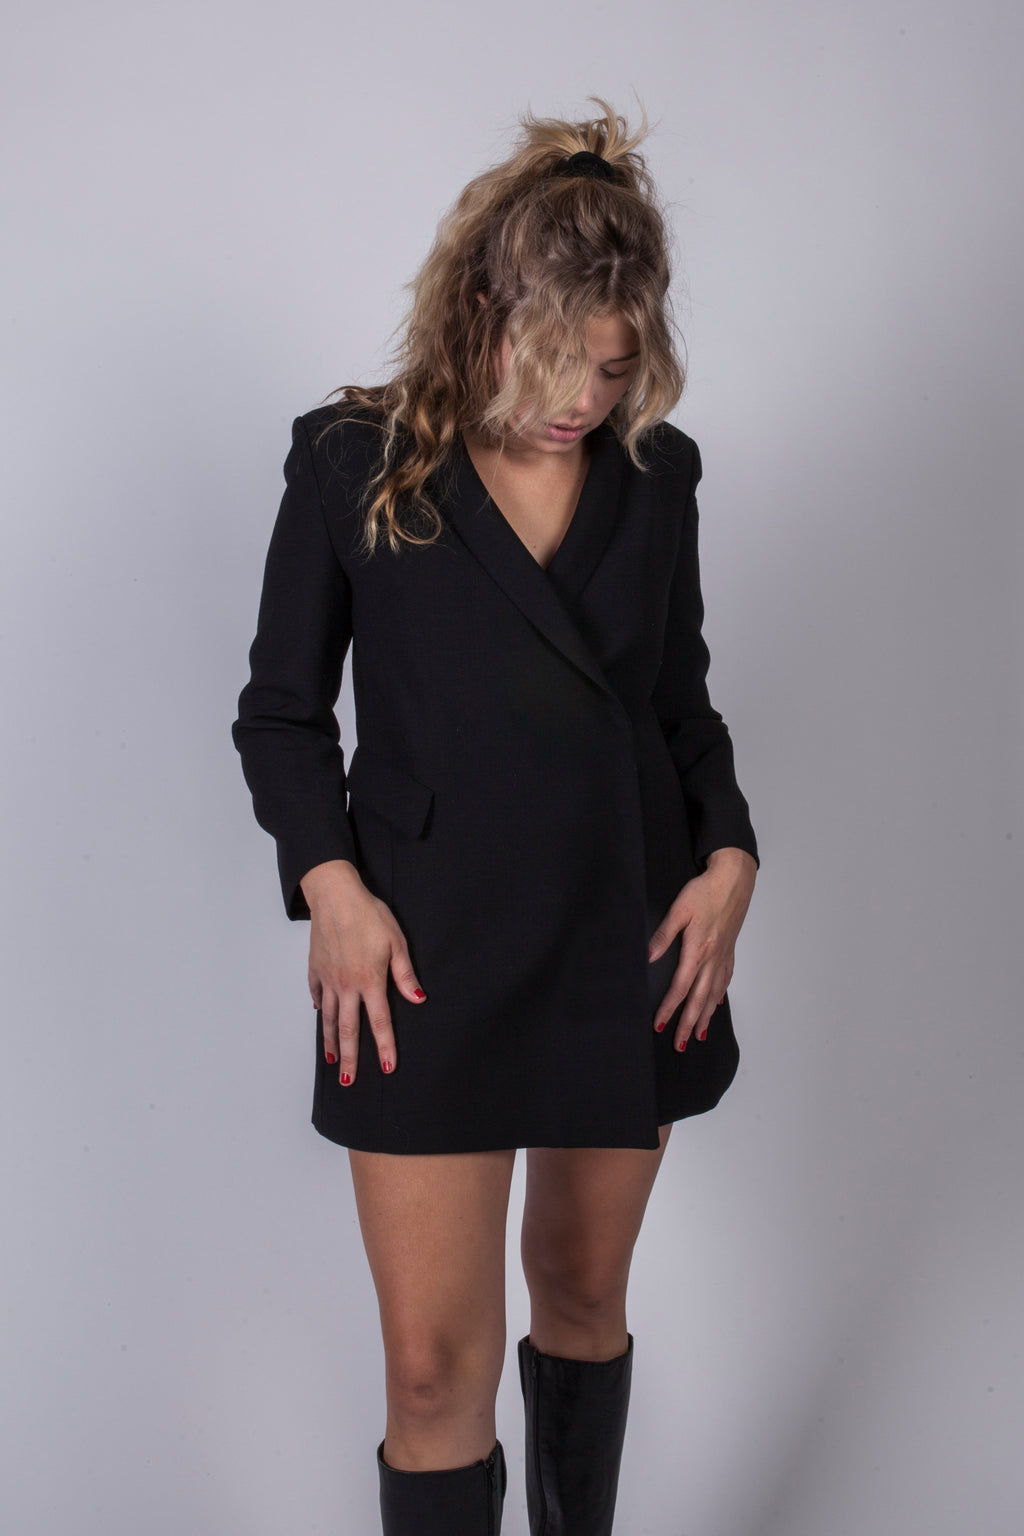 Vintage Giorgio Armani Black Blazer Dress